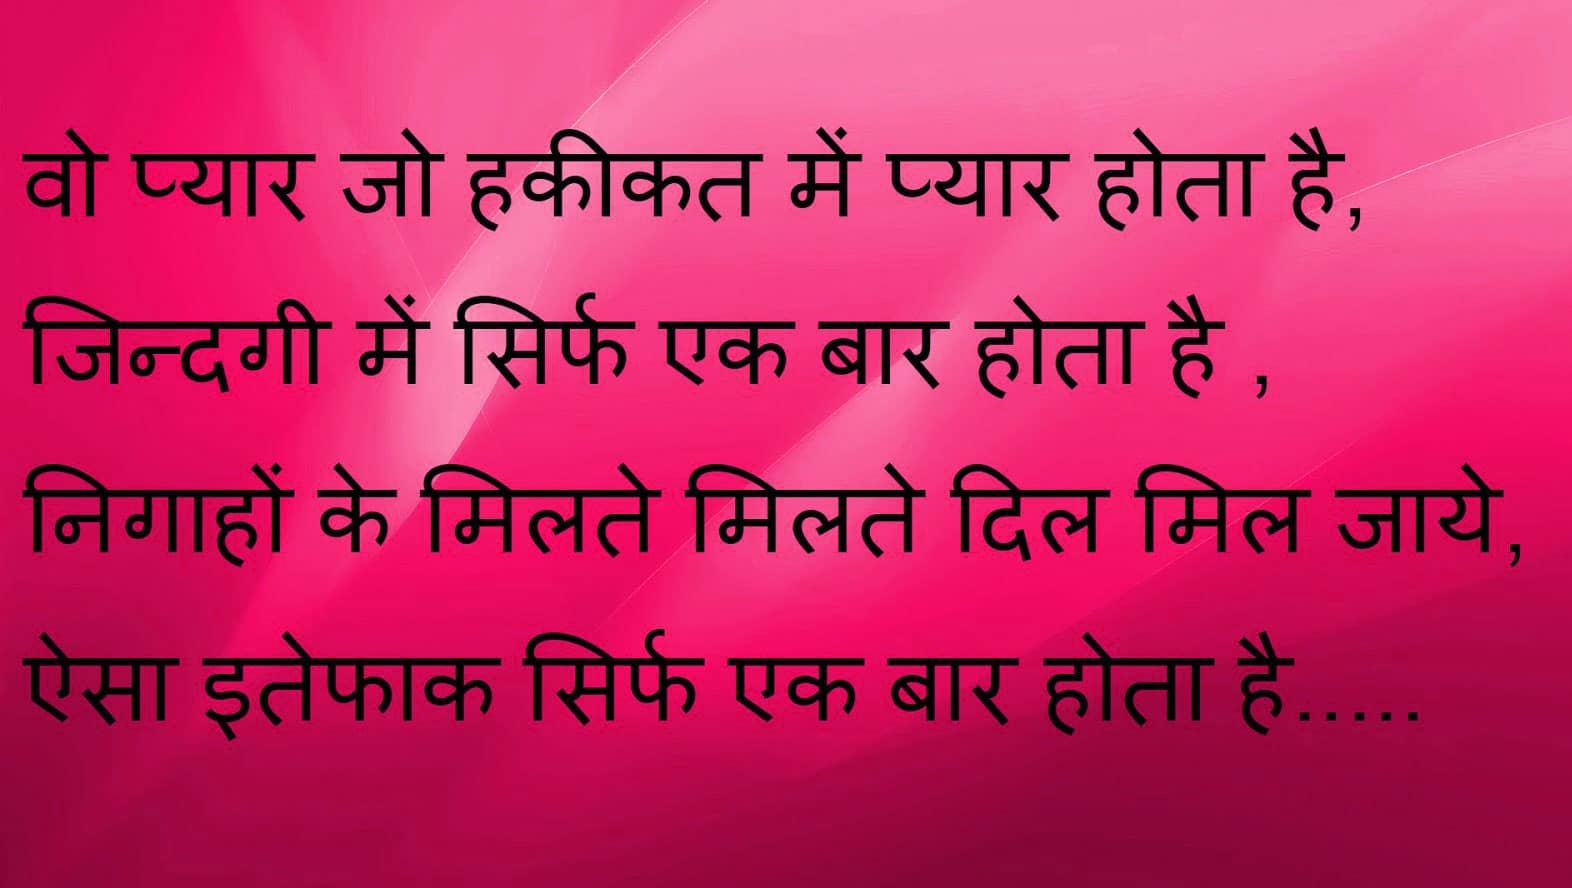 Latest Hindi Shayari Images HD Download 21